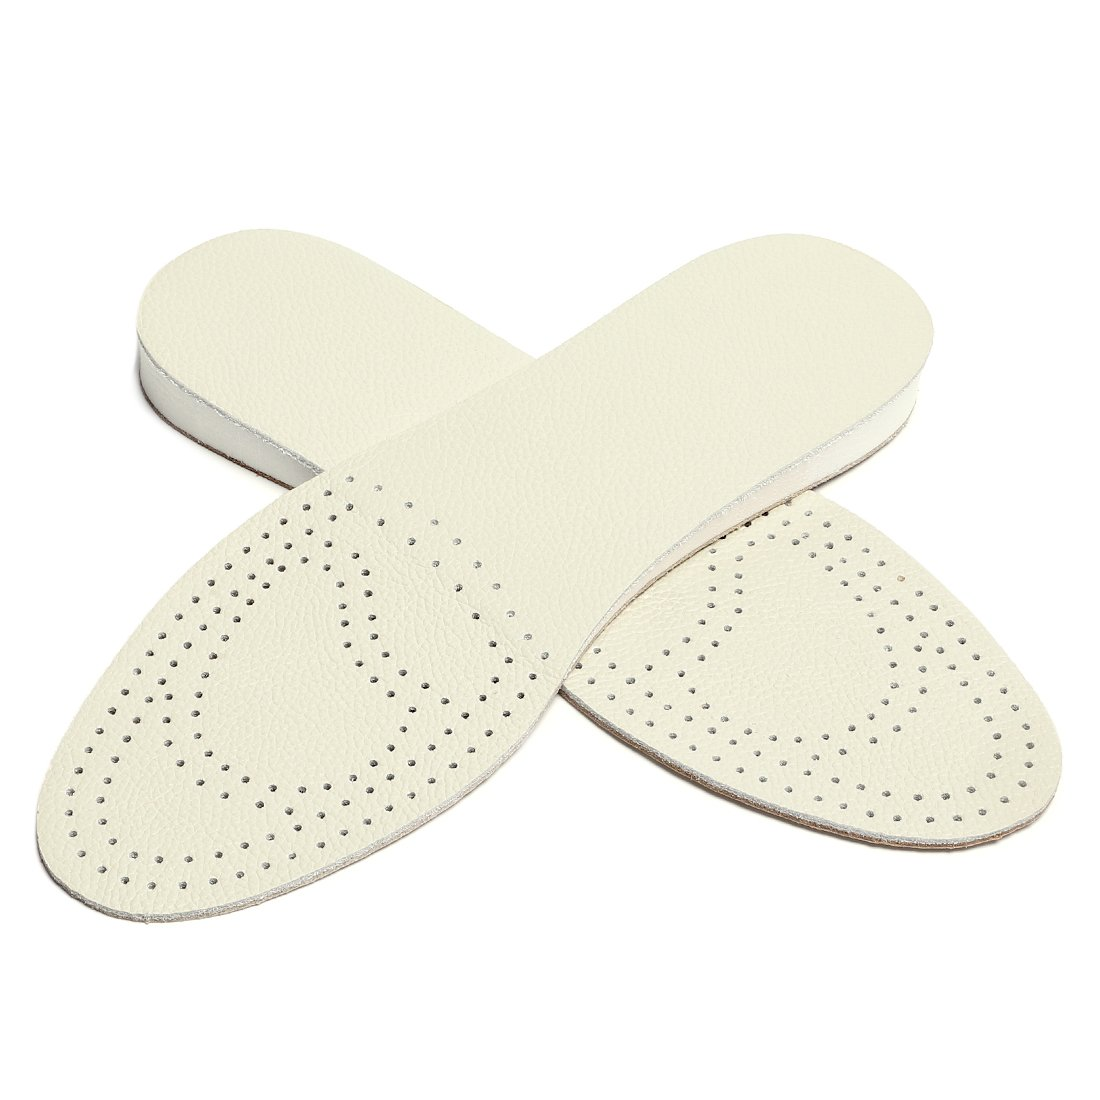 uxcell® Leather Insoles for Women Men Soft Breathable Pad Height Increase Insole Shock Absorber g18043000ux0029